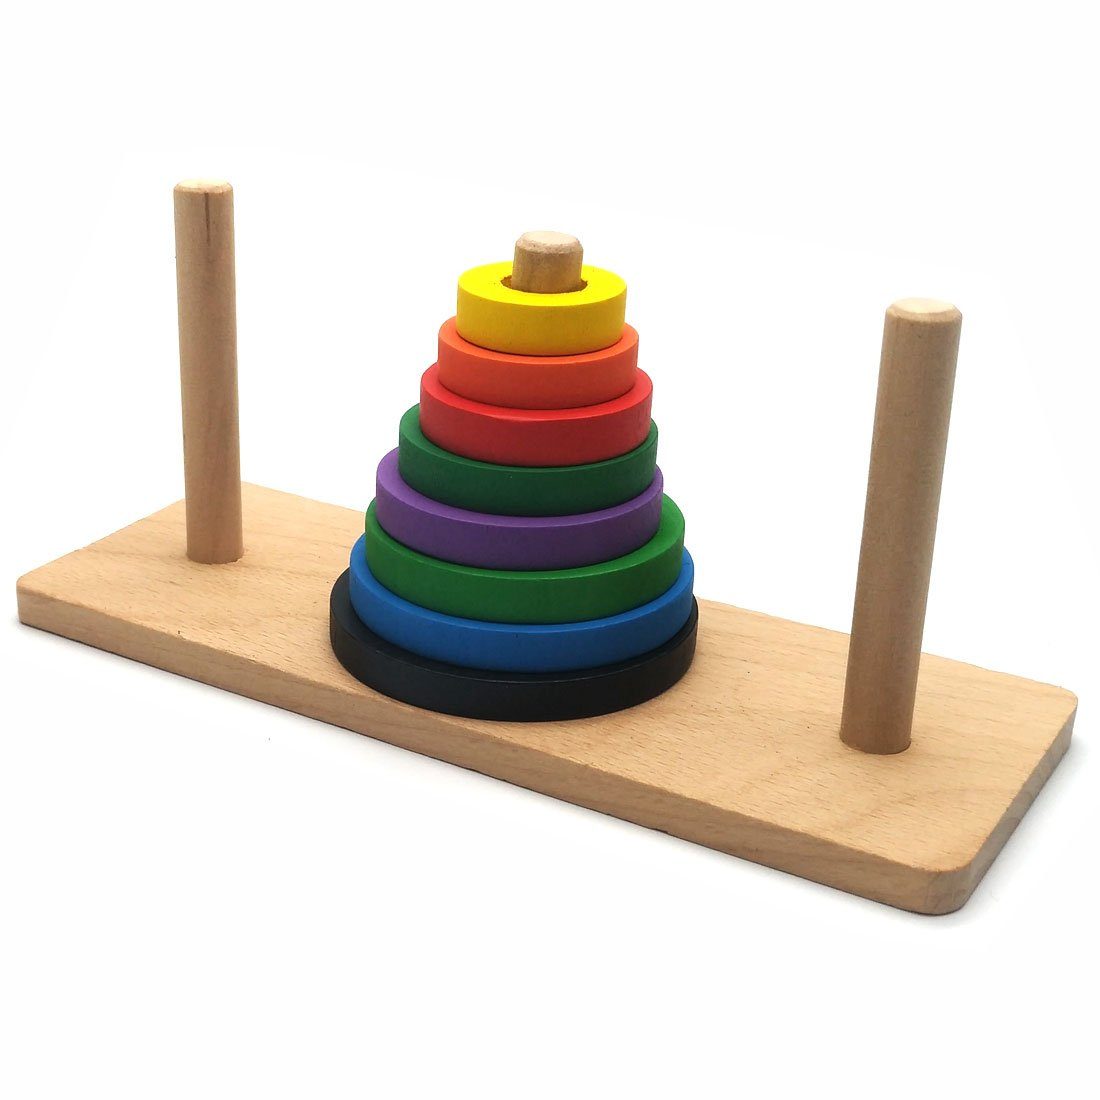 Puzzle Toy Brain Traing Tower of Hanoi Wooden Logic Brain Teaser Puzzle 8 Rings